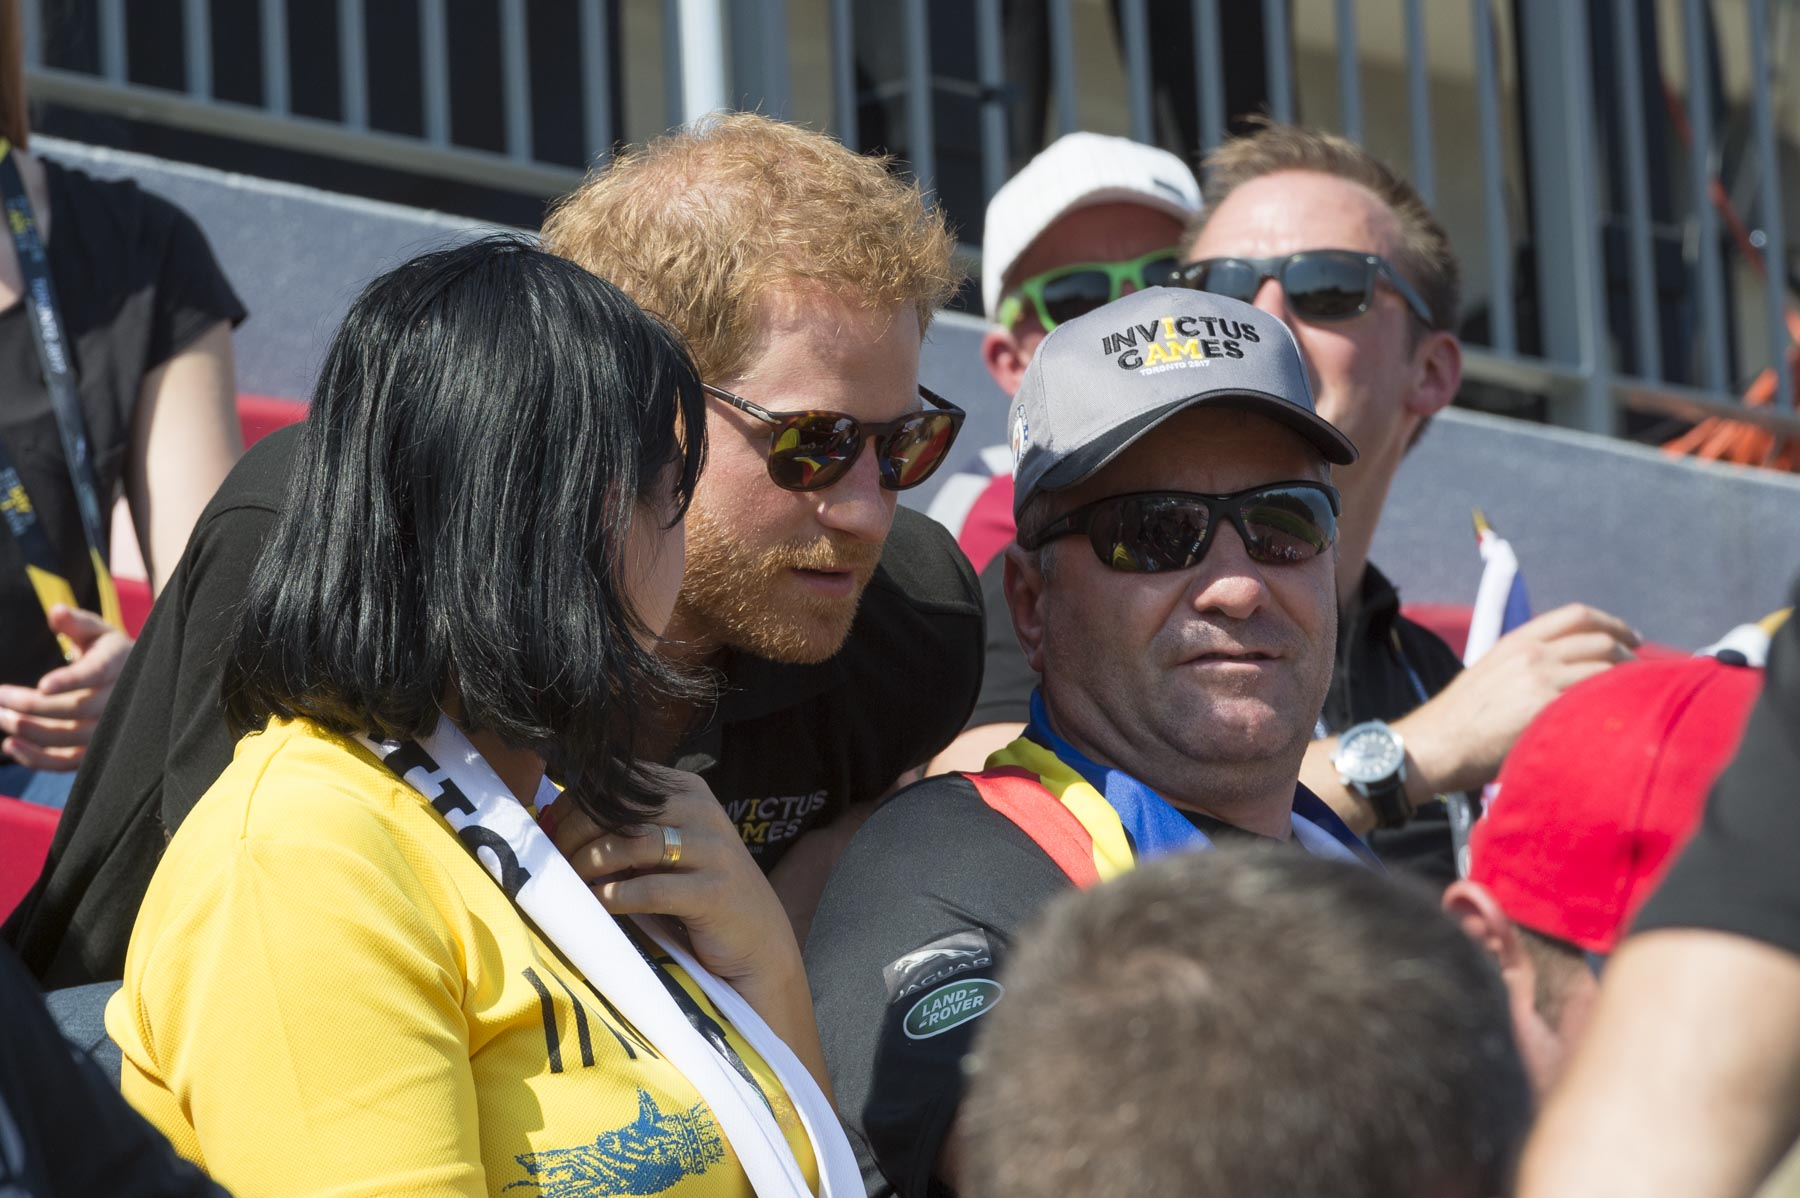 His Royal Highness Prince Henry of Wales, Patron of the Invictus Games, was also in attendance.